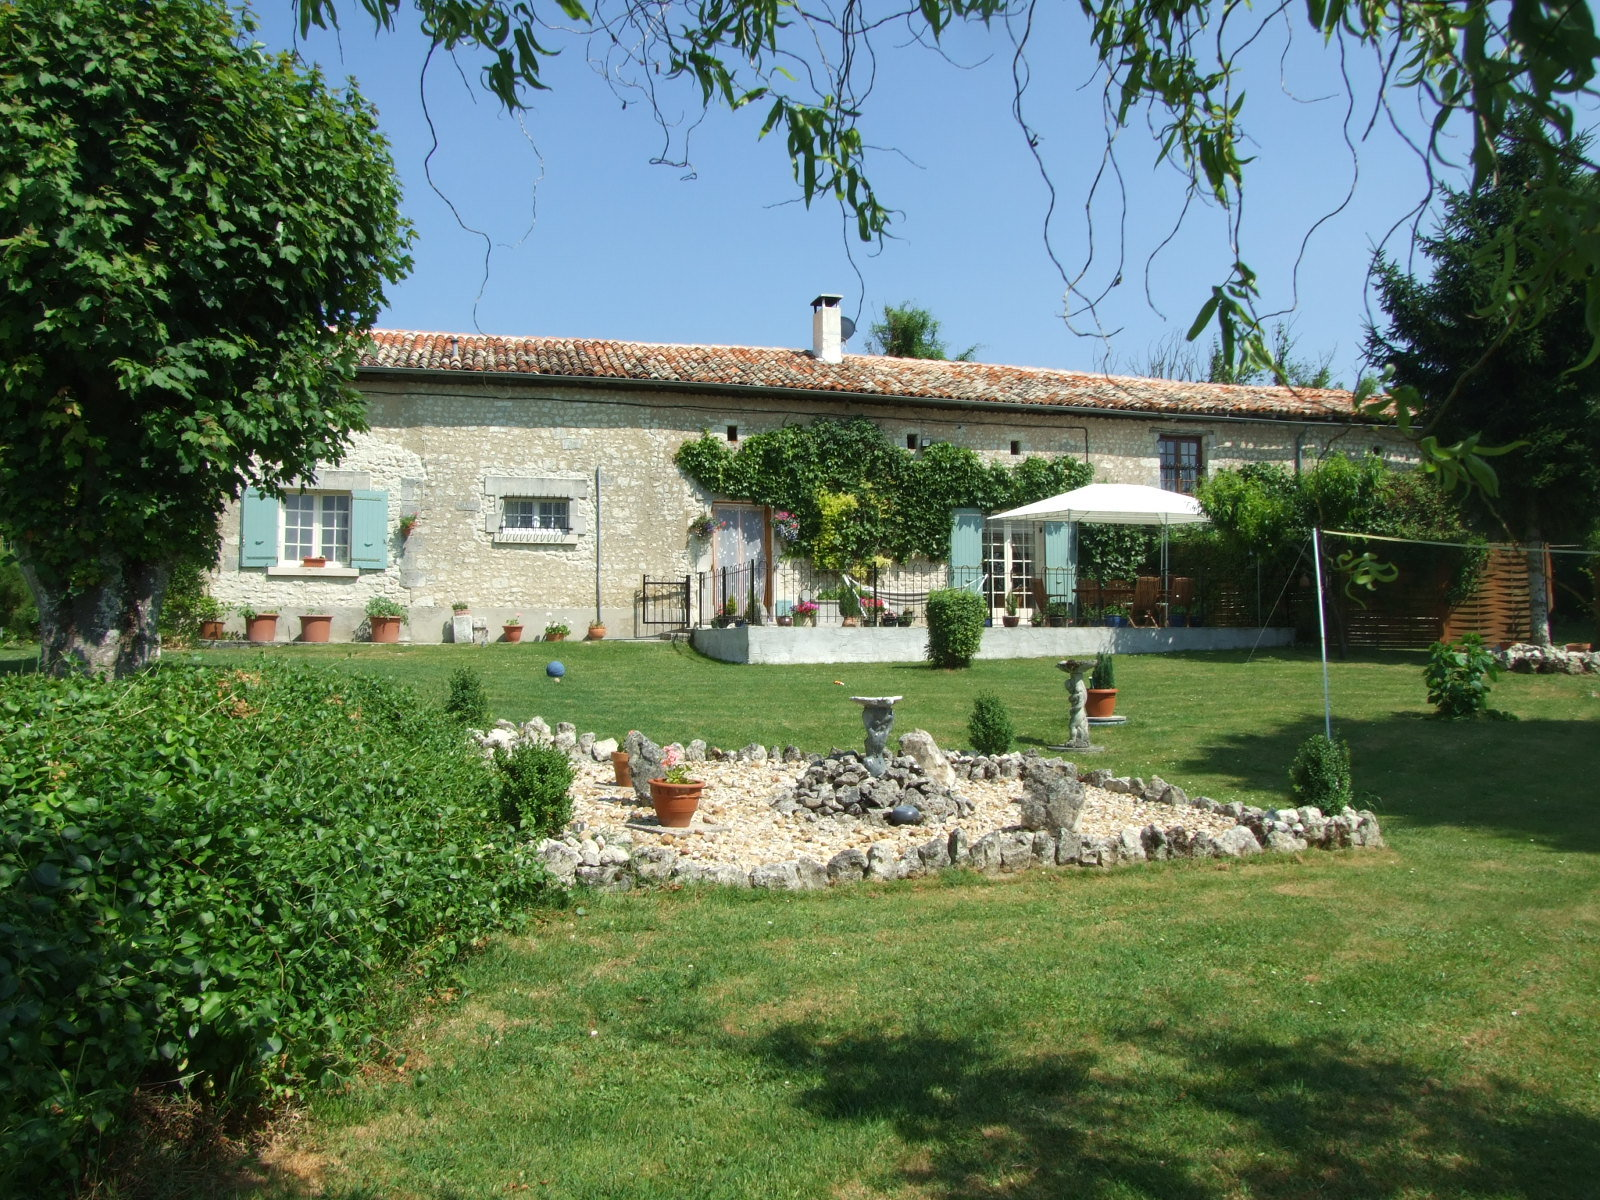 Pretty character farmhouse in lovely garden with swimming pool, very private location